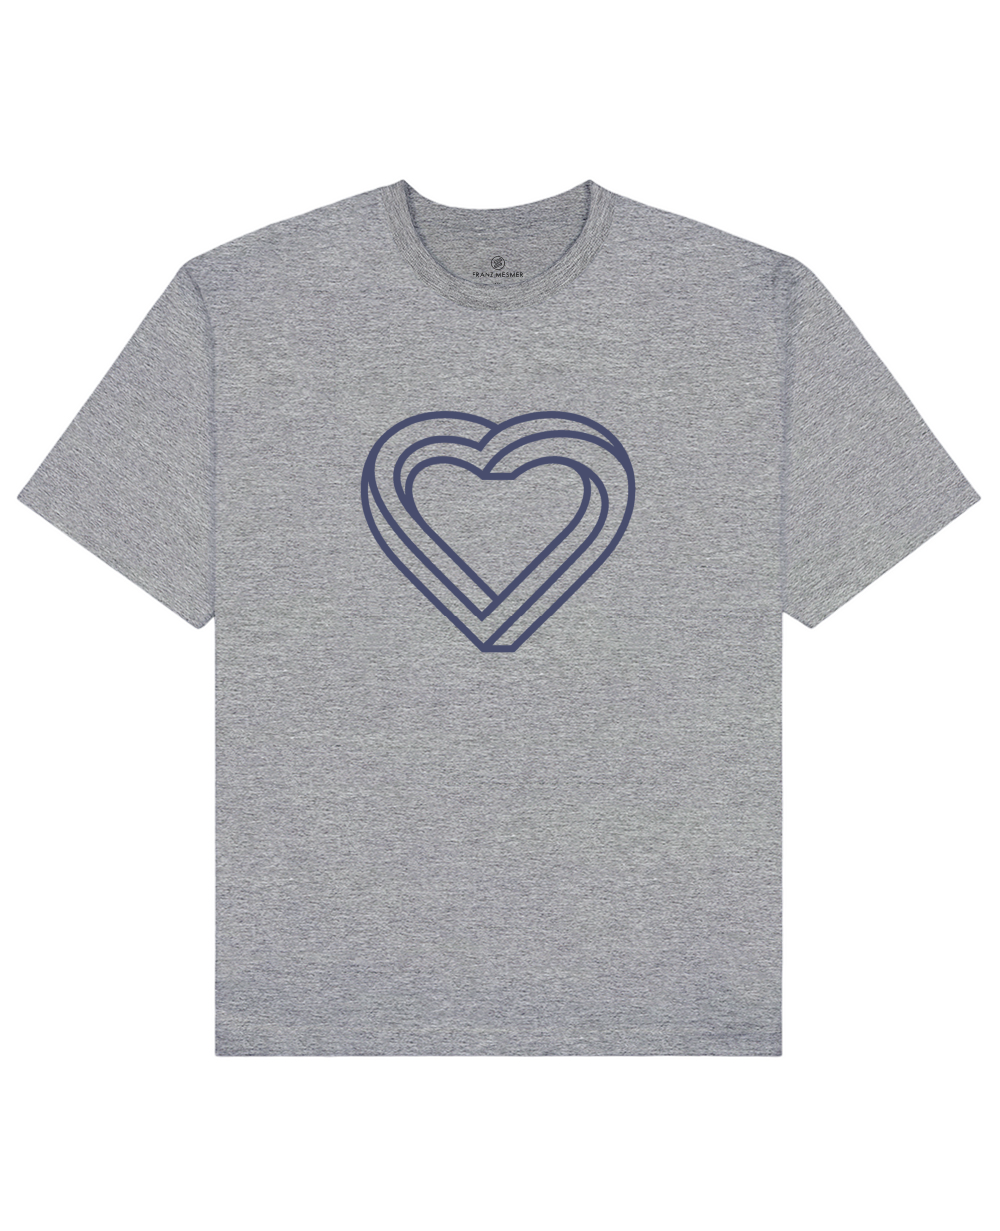 Impossible Heart Print T-Shirt in Gray - T-Shirts - Franz Mesmer - BRANMA